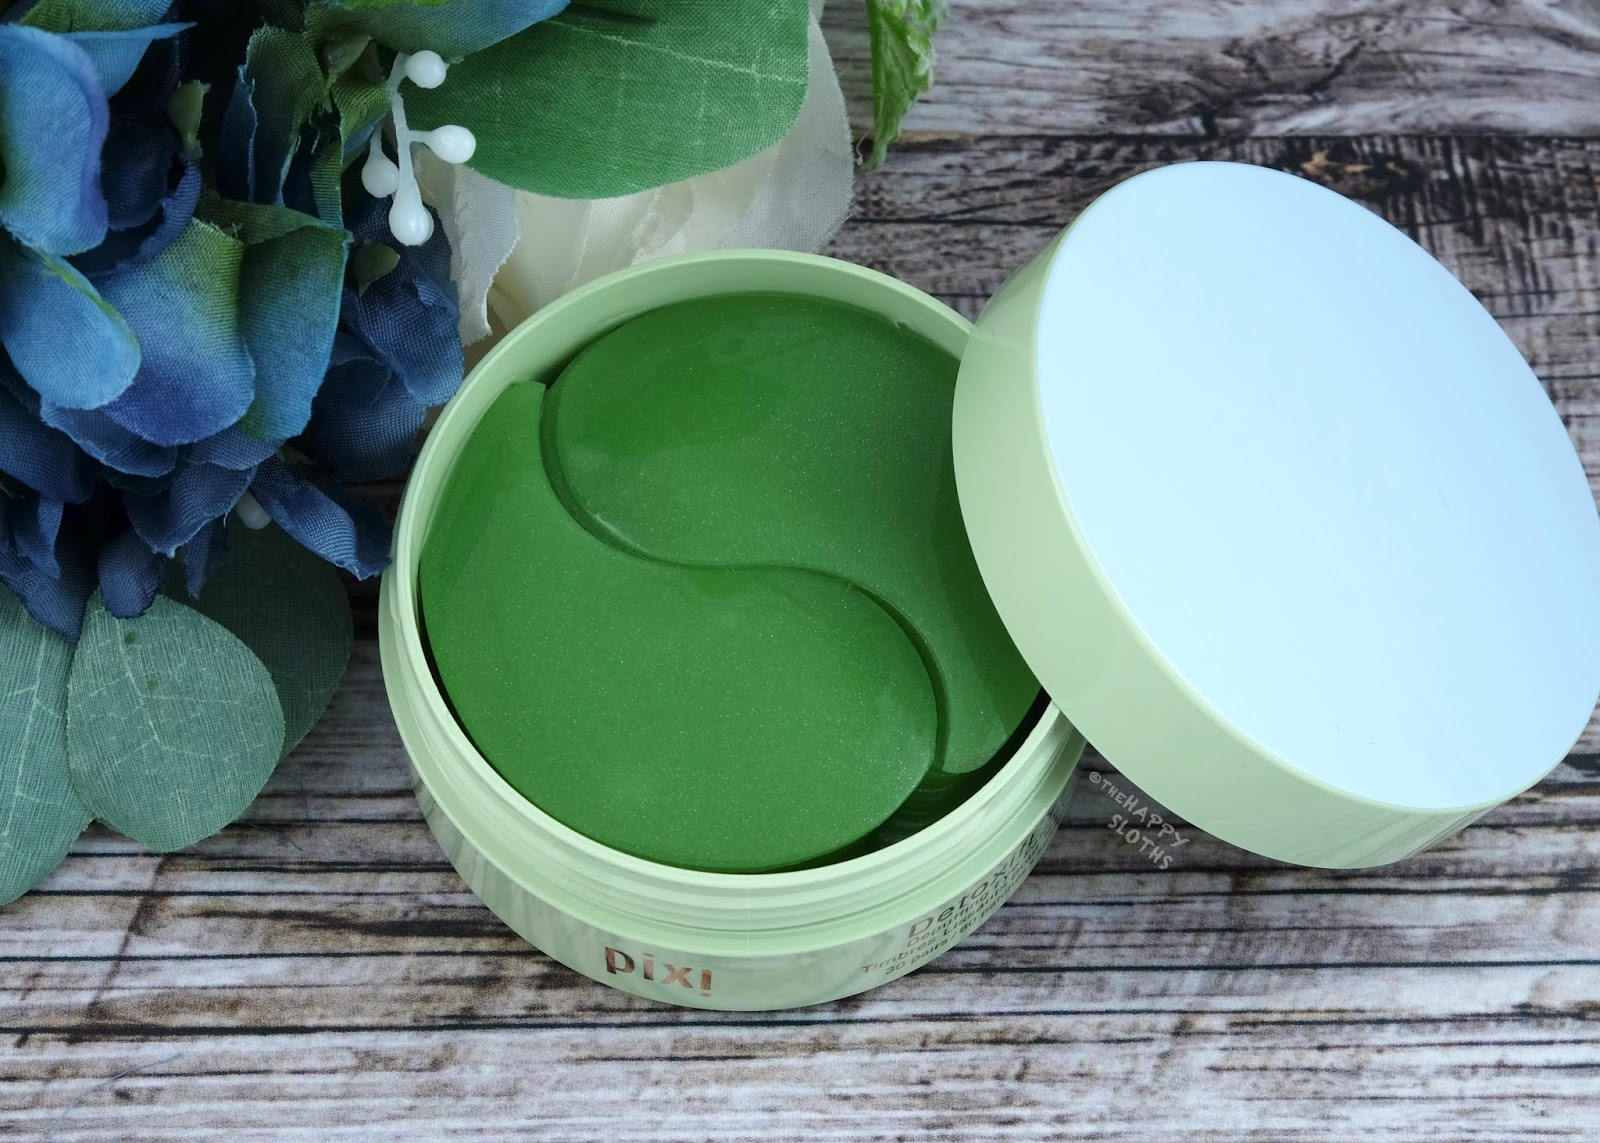 Pixi | DetoxifEYE Hydrogel Depuffing Eye Patches: Review